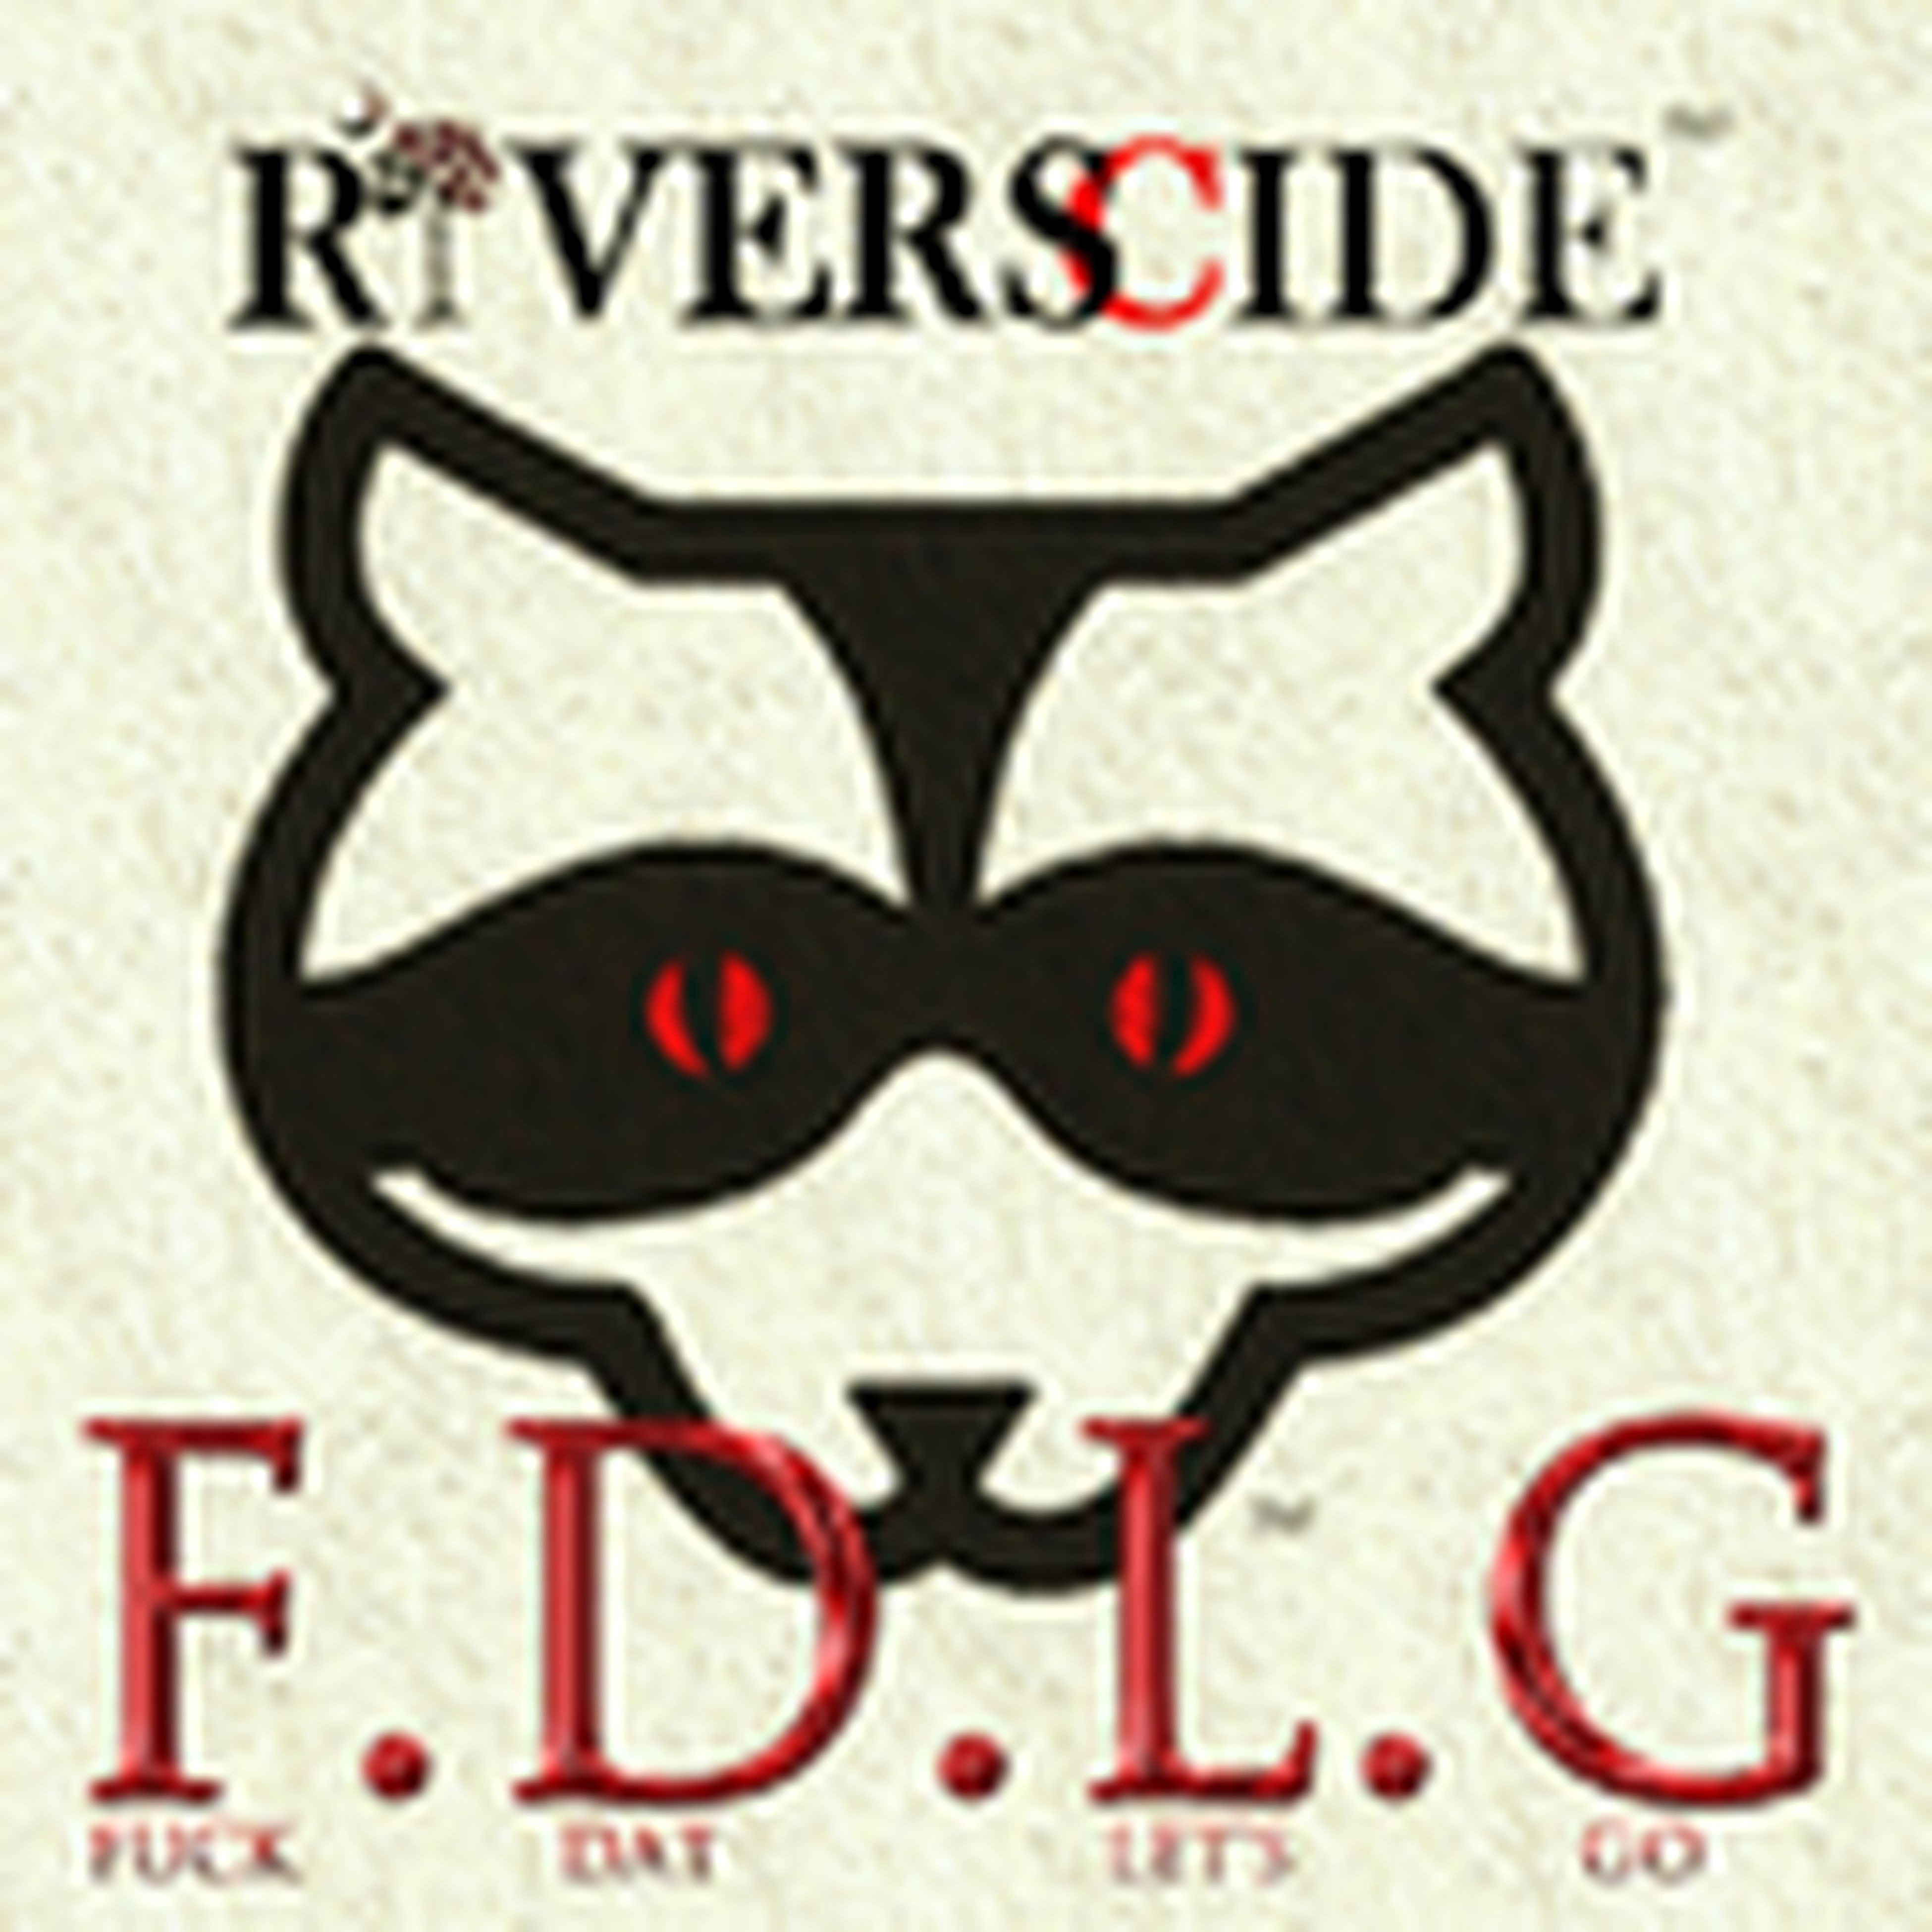 "RIVERSCIDE Carolina REALMUSIK KOONCITY #GOOD MUSIC S/O to my brother & FAM with there hardwork and dedication......check them out www.datpiff.com title name HB & GOOD OLE DEE ""F.D.L.G"" LETS GOOO!!!!!"